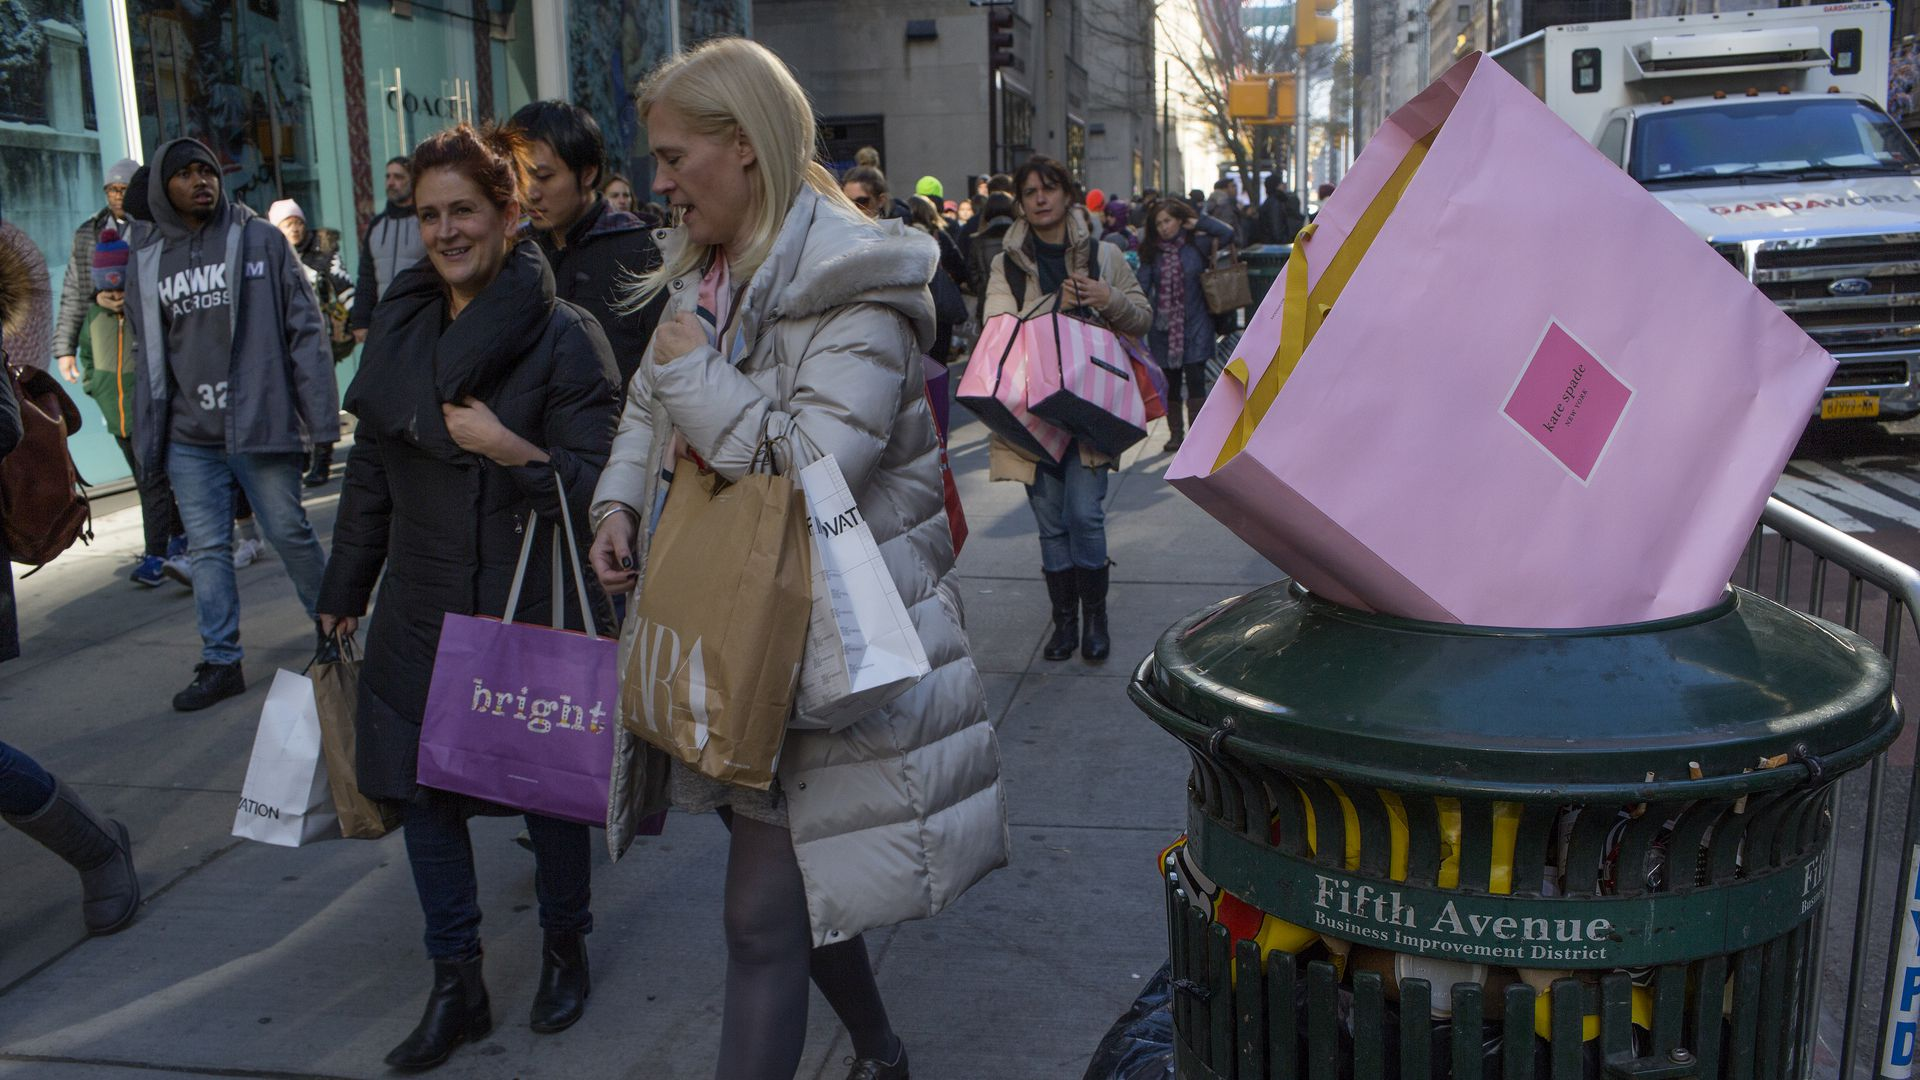 In this image, a pink shopping bag sits on top of a trash can while holiday shoppers walk down the street